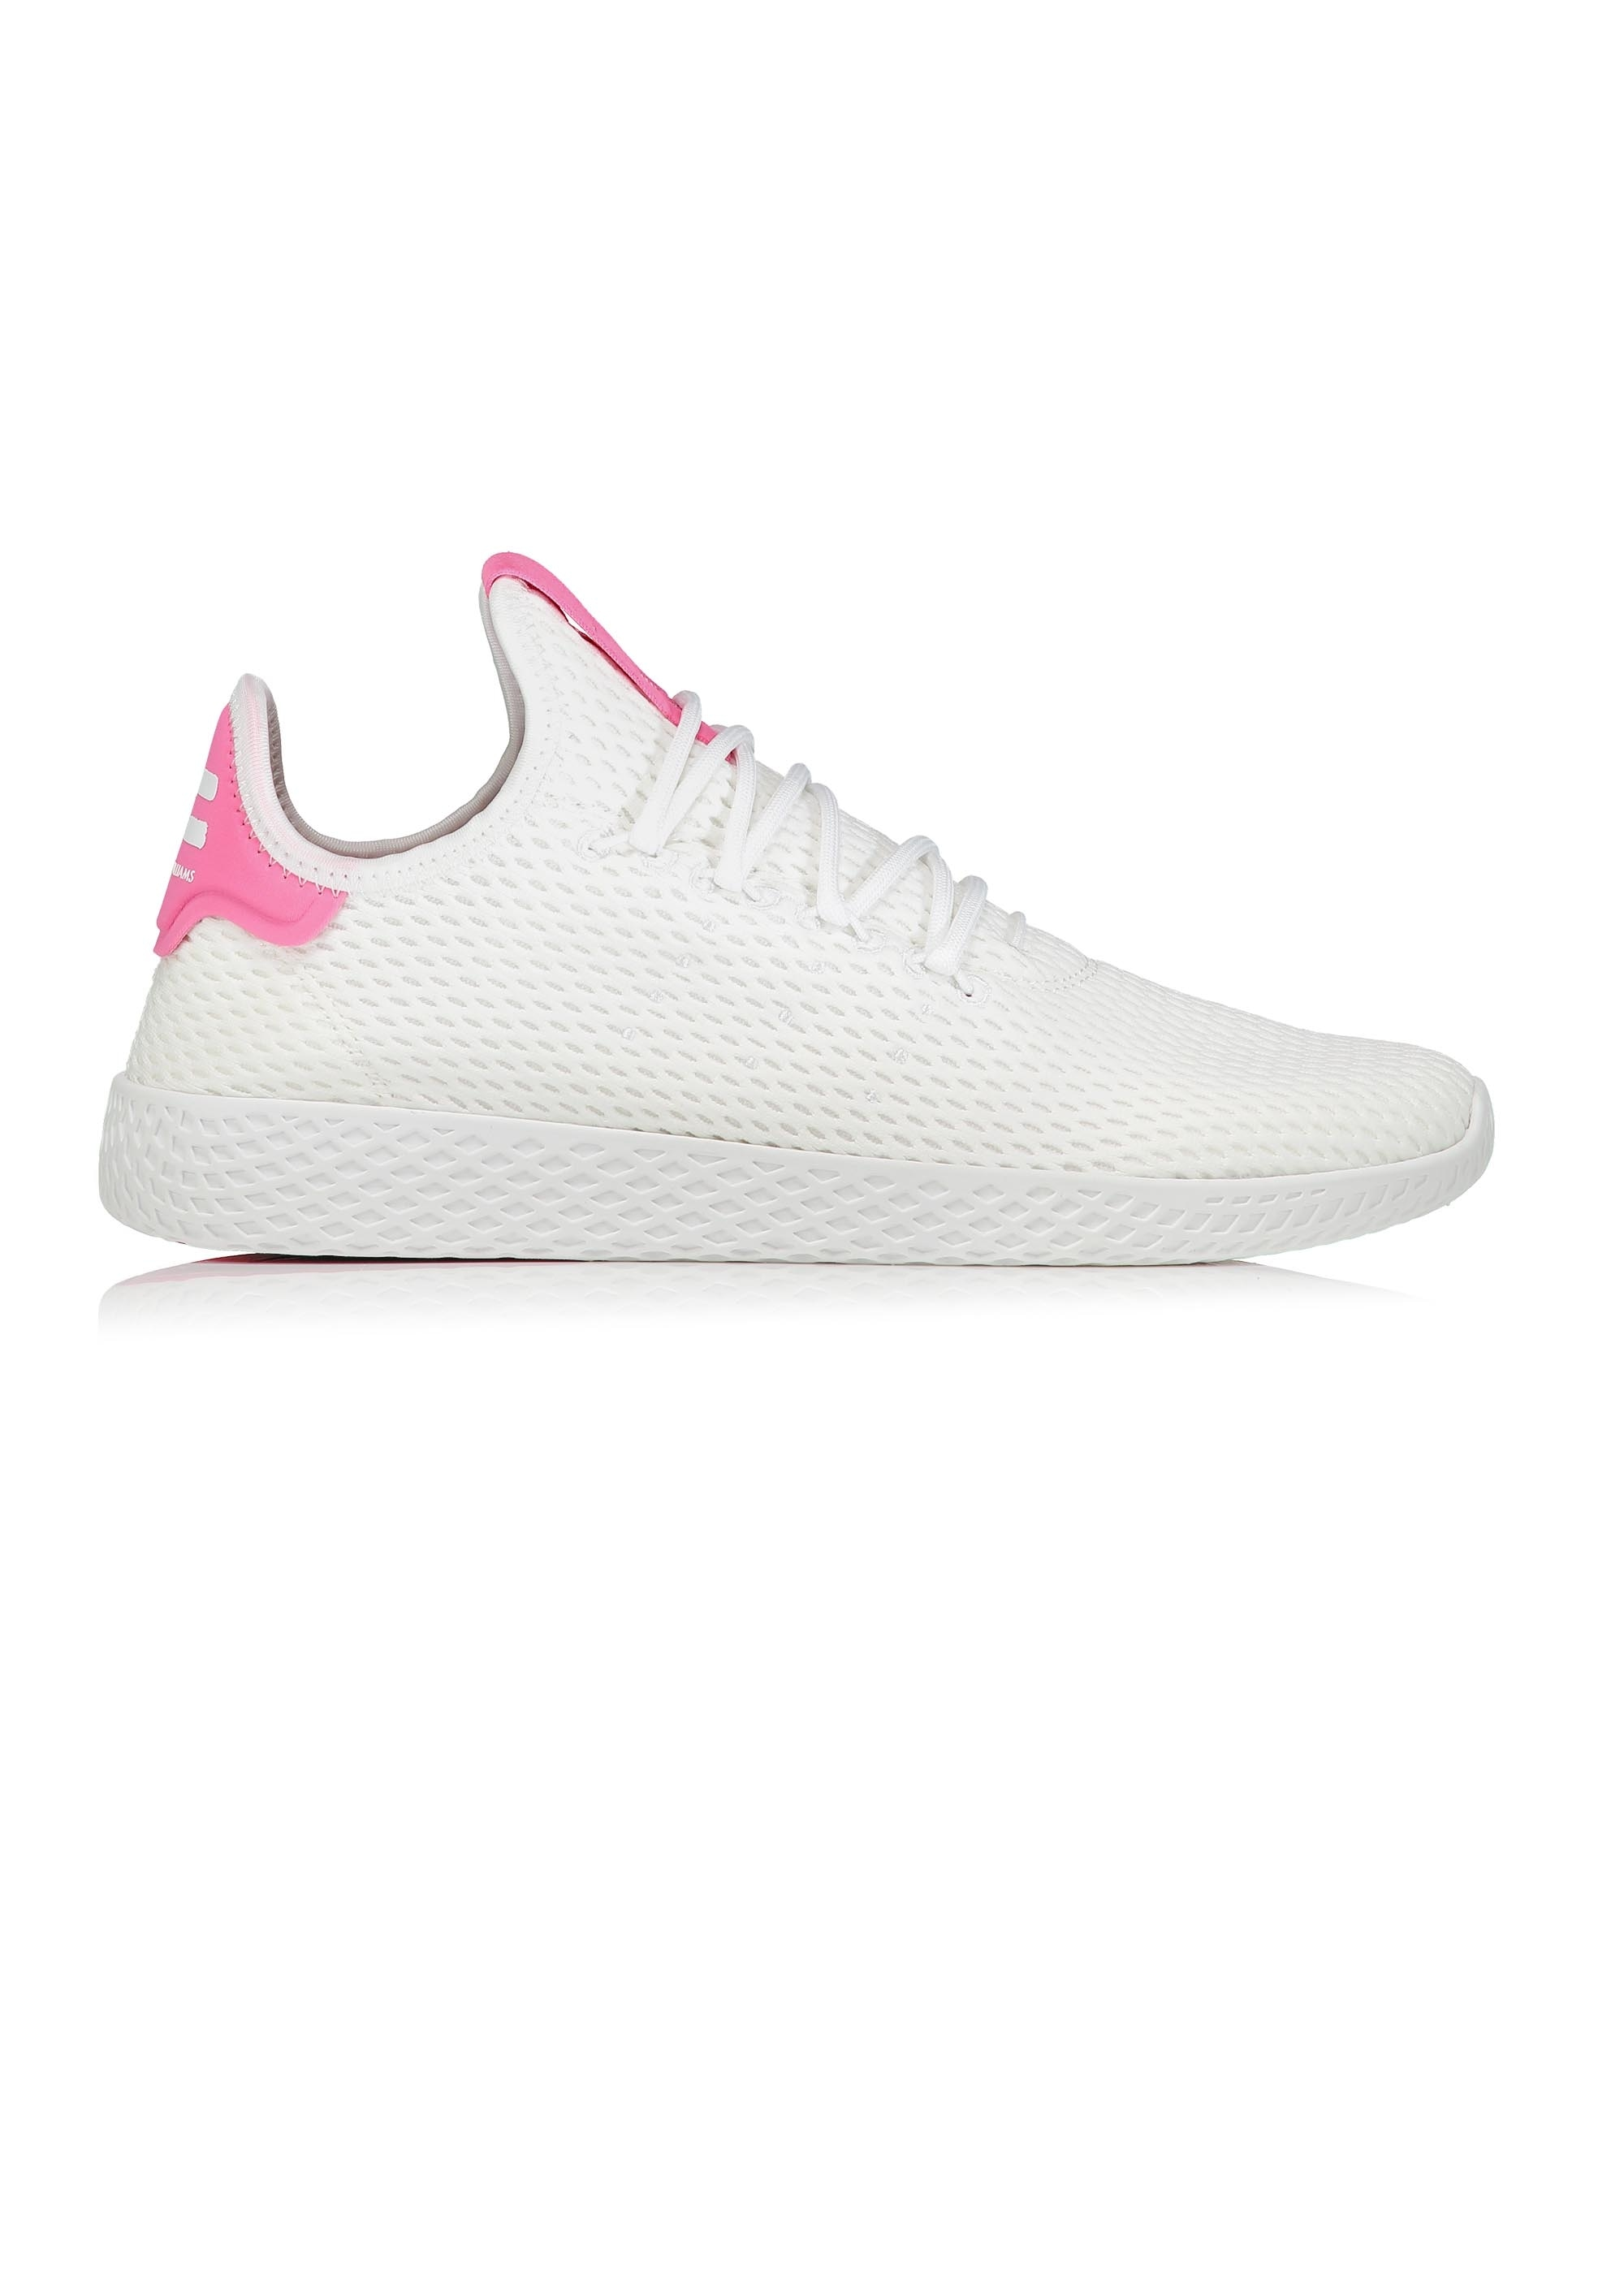 e1d9505085f5c adidas Originals Footwear Pharrell Williams Tennis Hu White   Pink ...